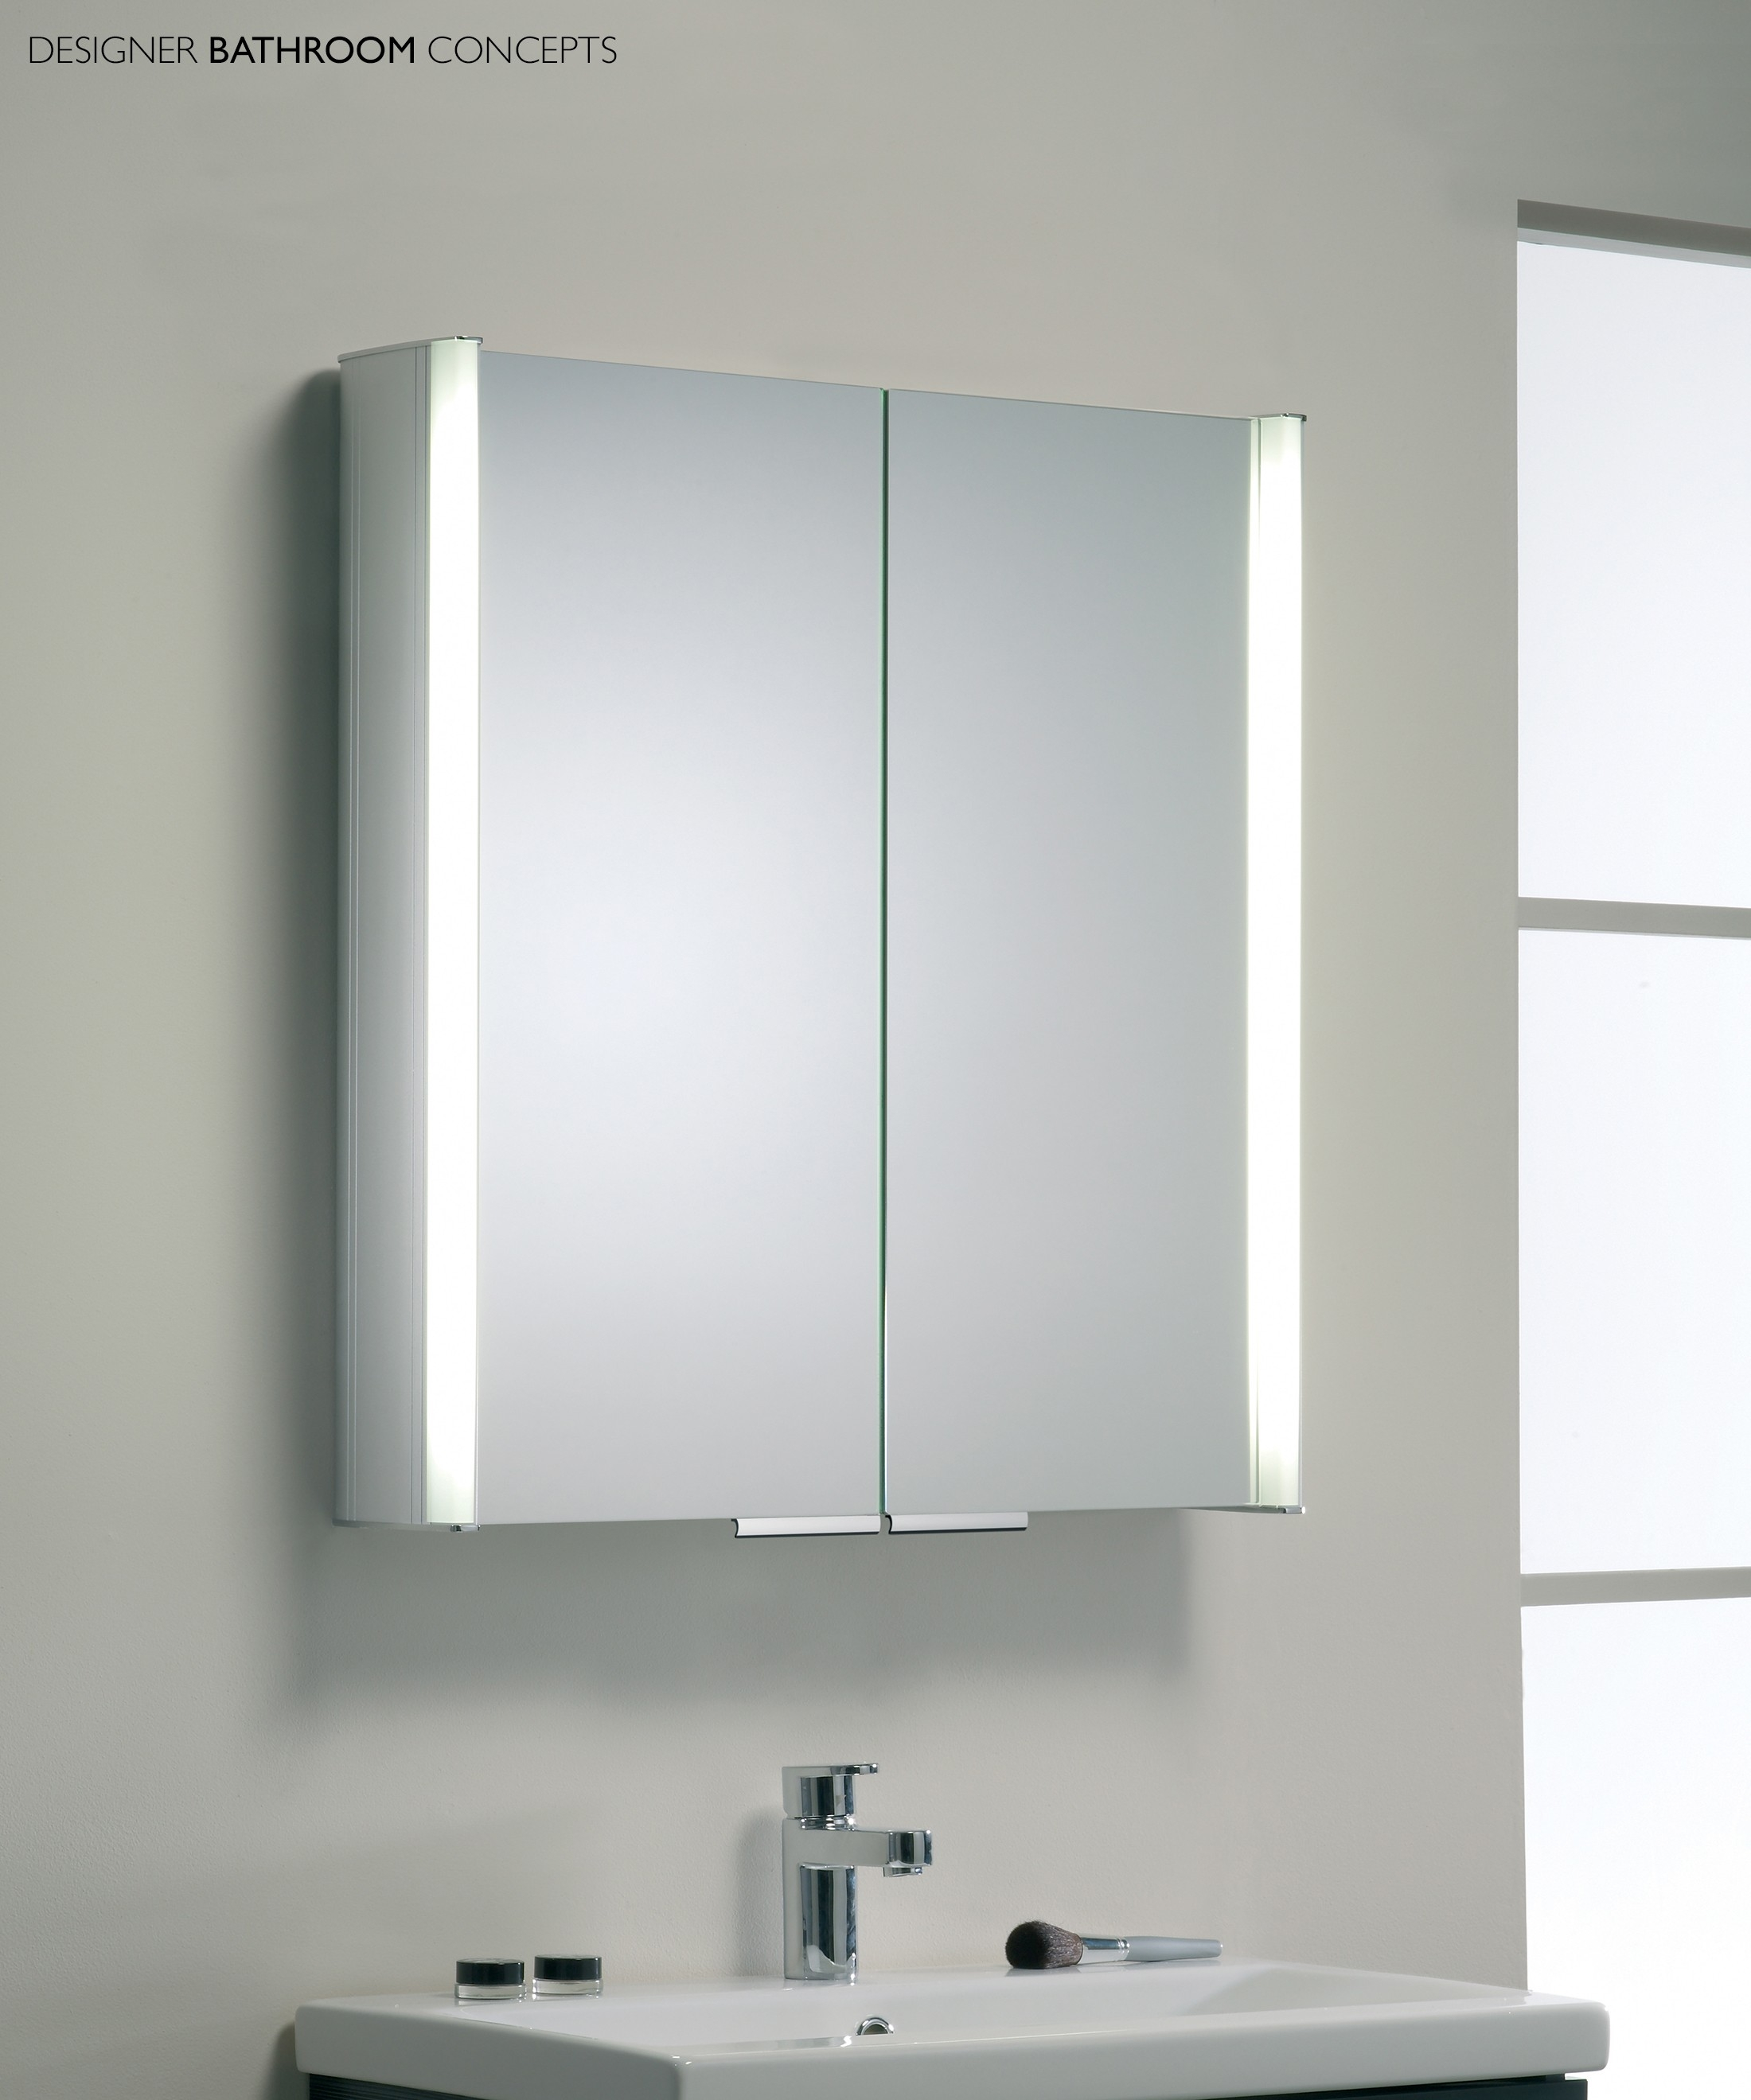 Illuminated Bathroom Wall Cabinet Mirror W Light 750mmbathroom lighted mirror cabinet bathroom illumine dual stainless